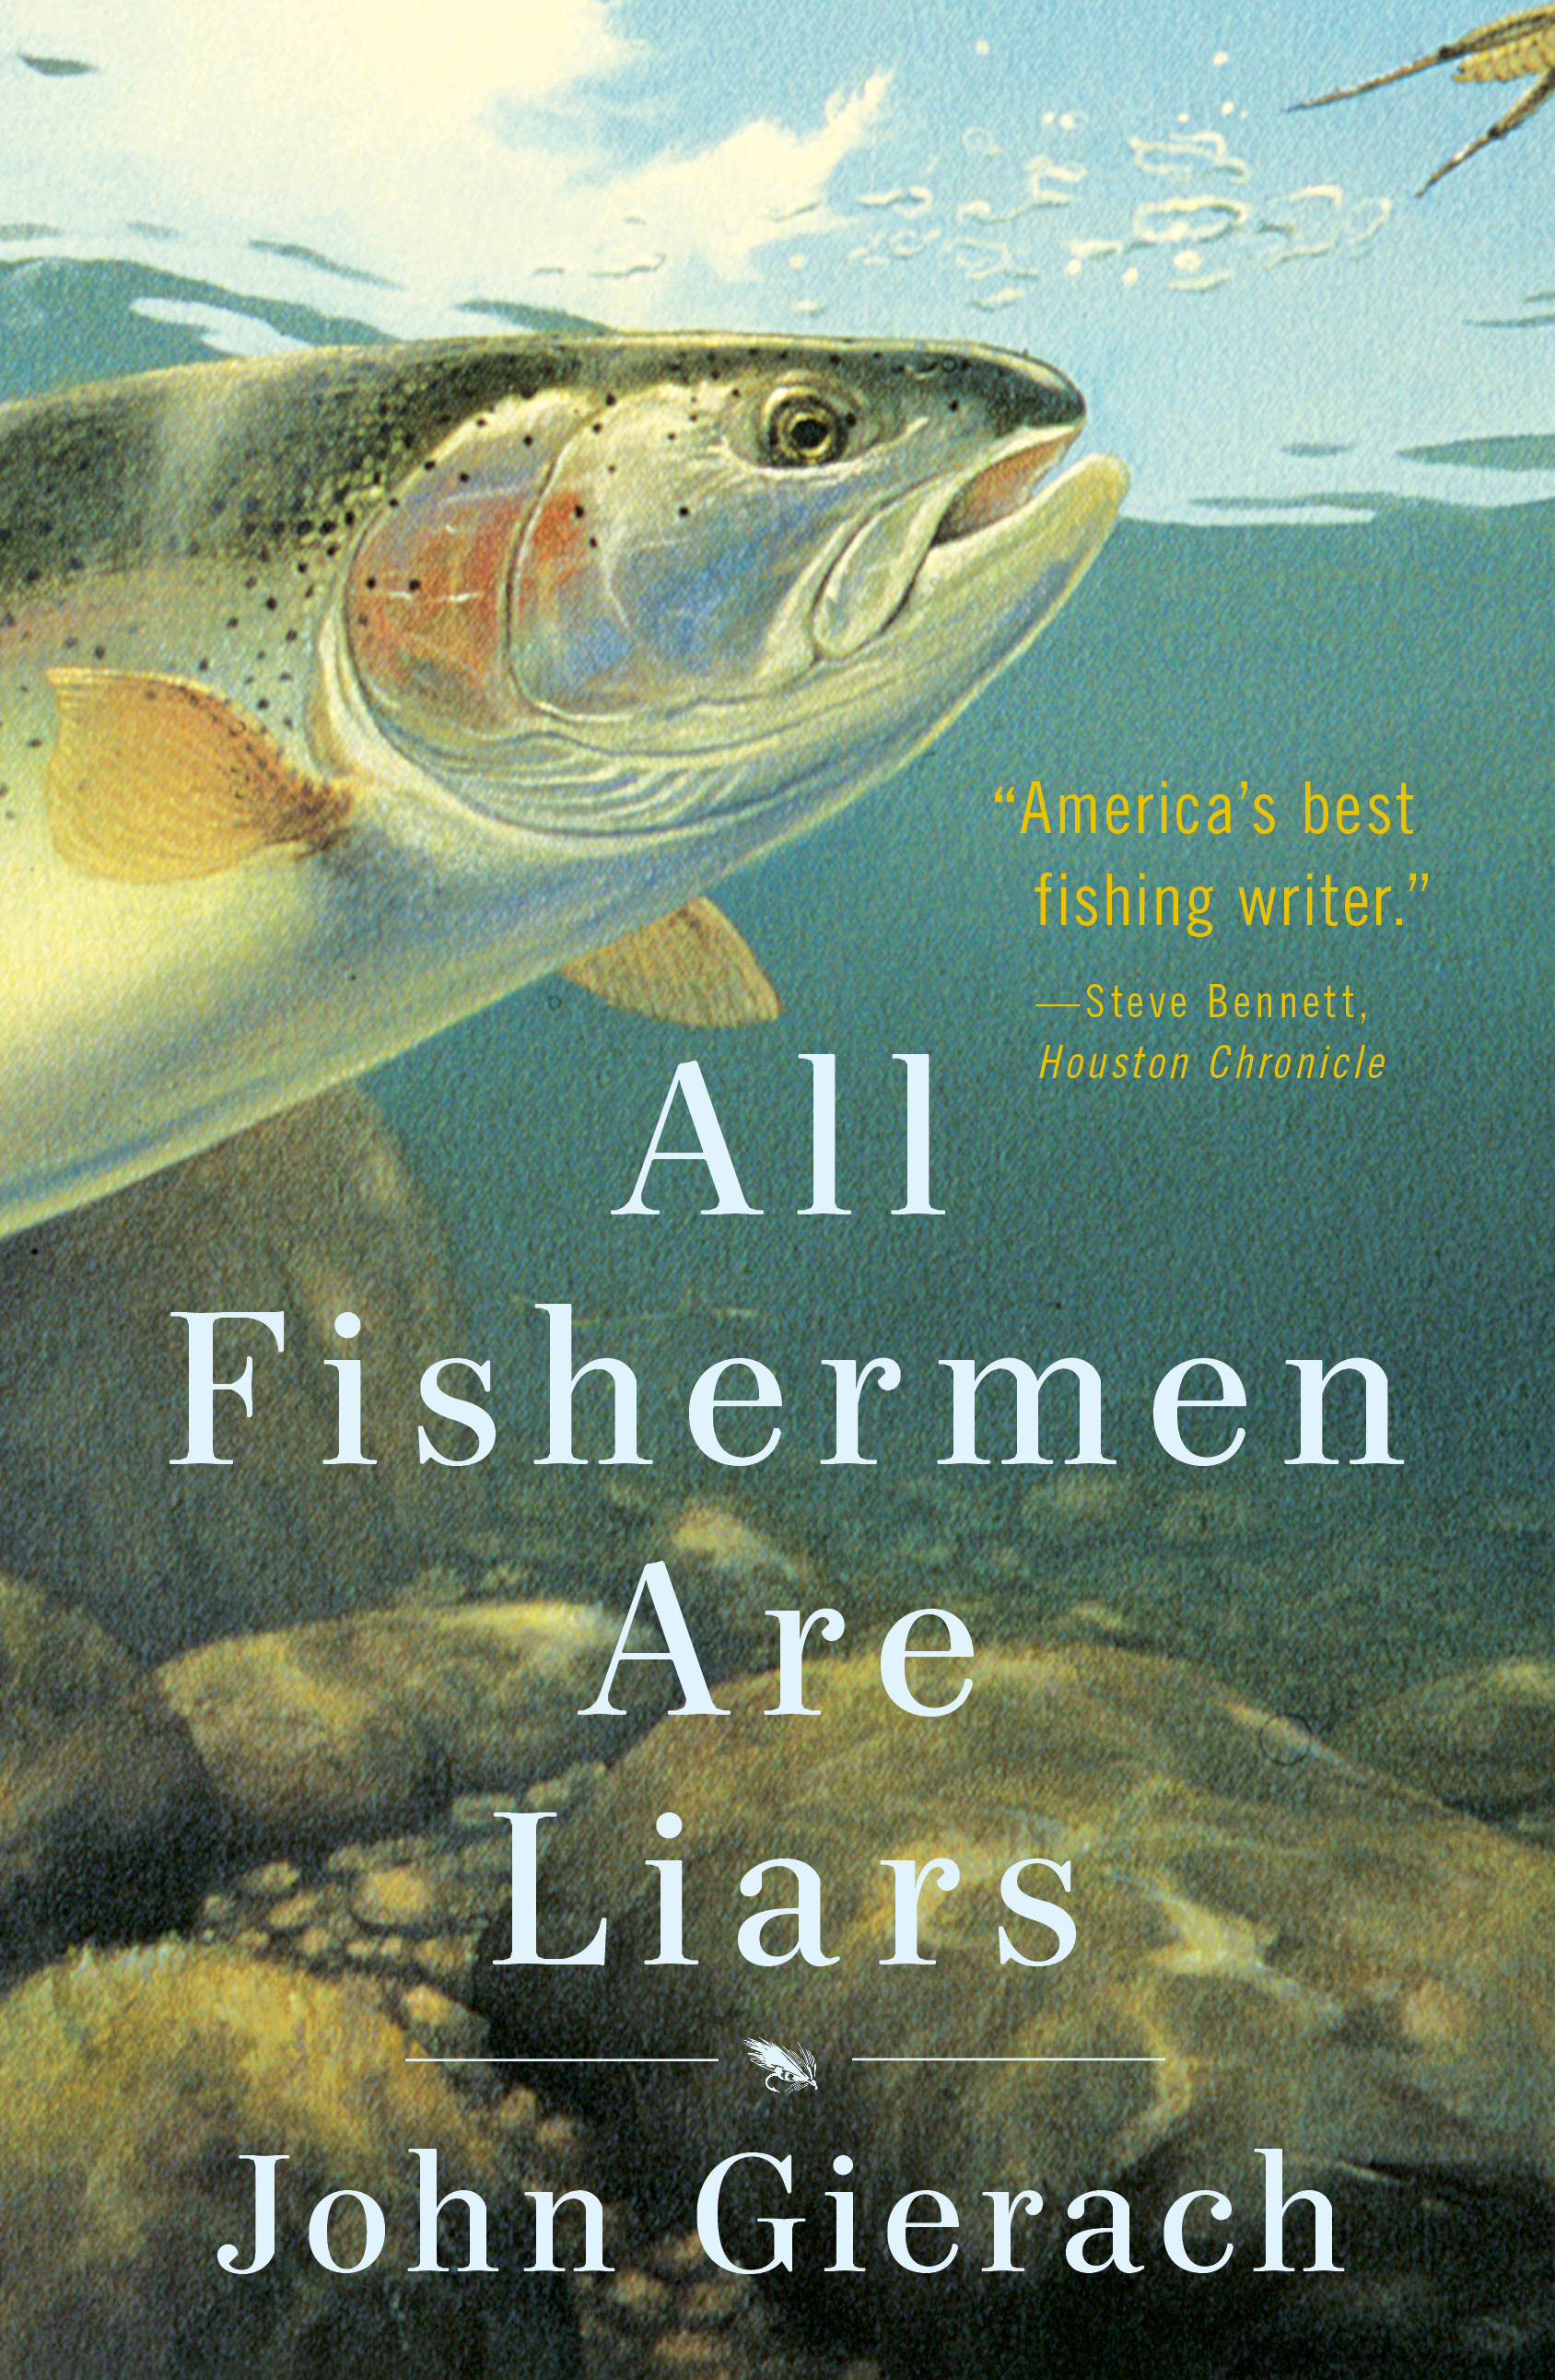 All-fishermen-are-liars-9781451618310_hr